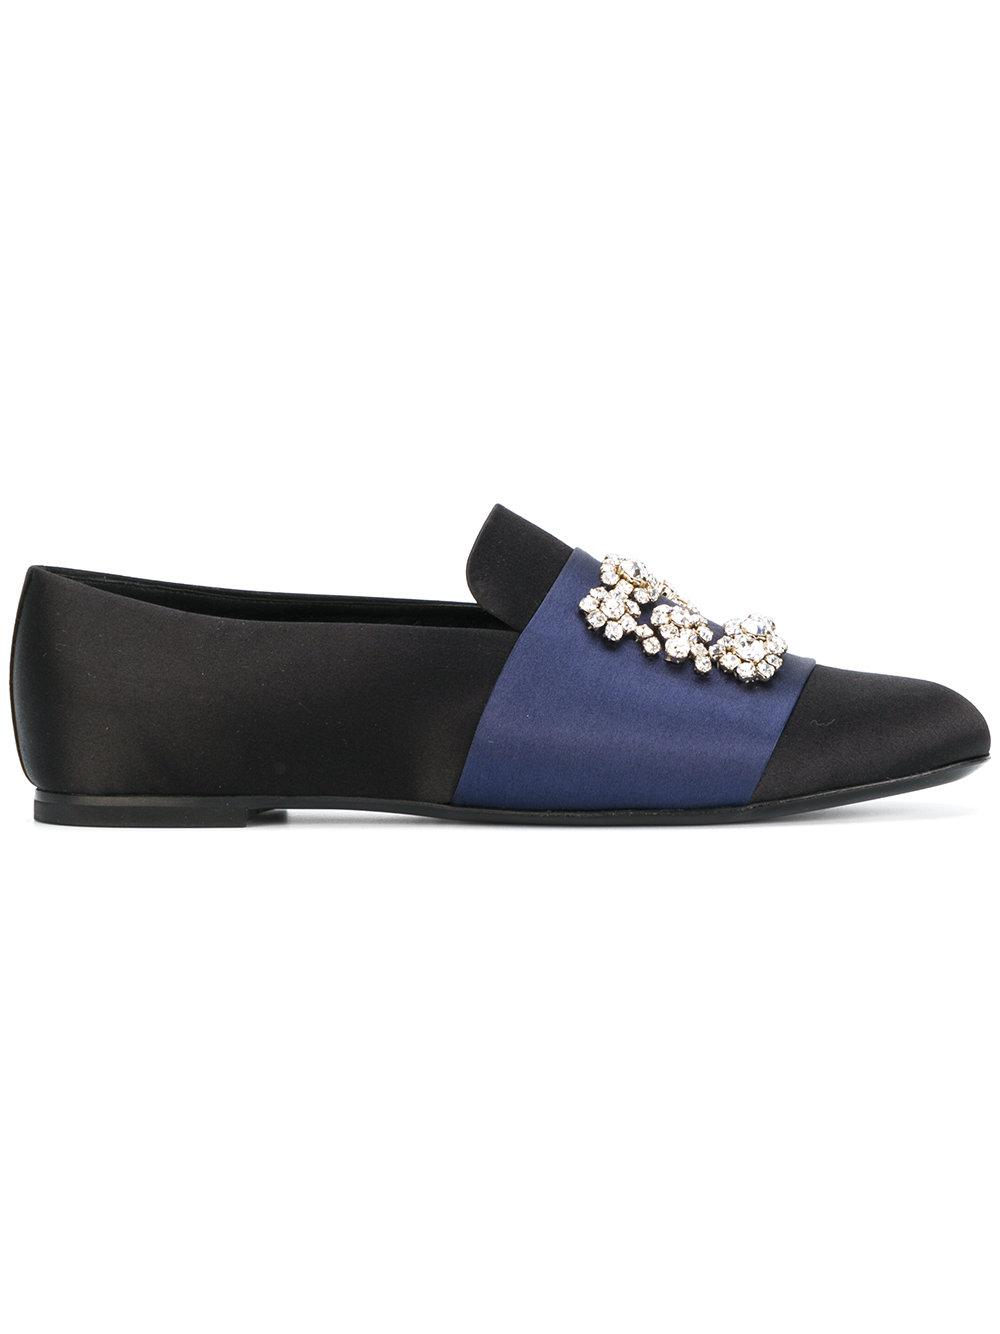 Roger Vivier Flower Strass satin loafers ELrOBqx